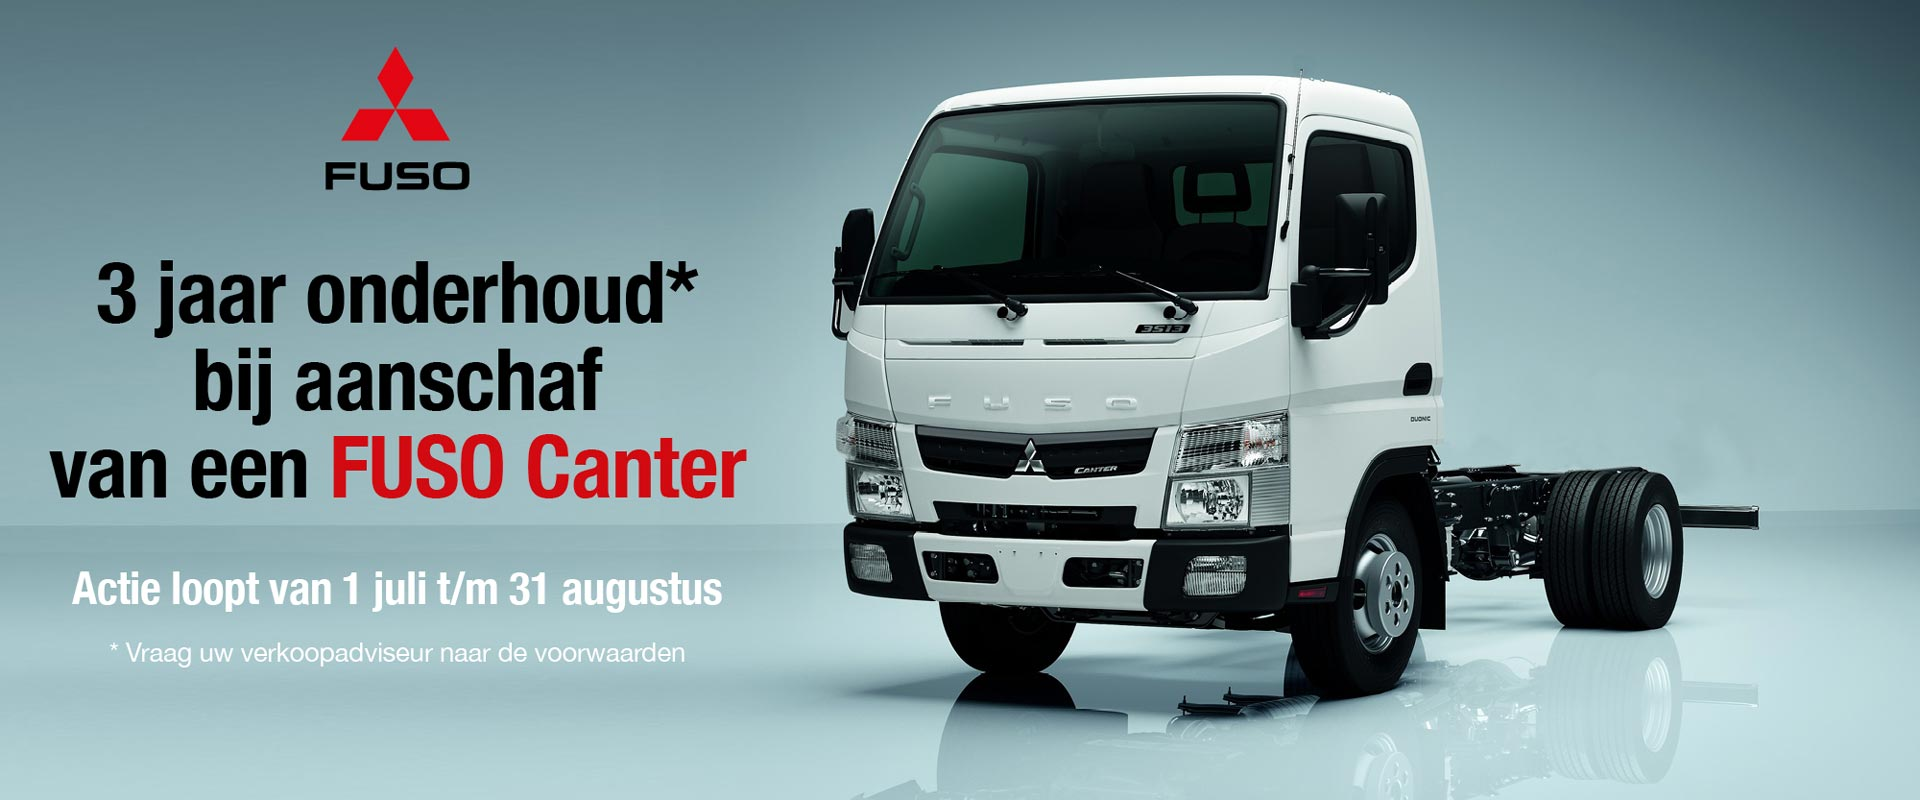 201339_MBDB_Banner-Fuso-Canter-actie01_1920x800-